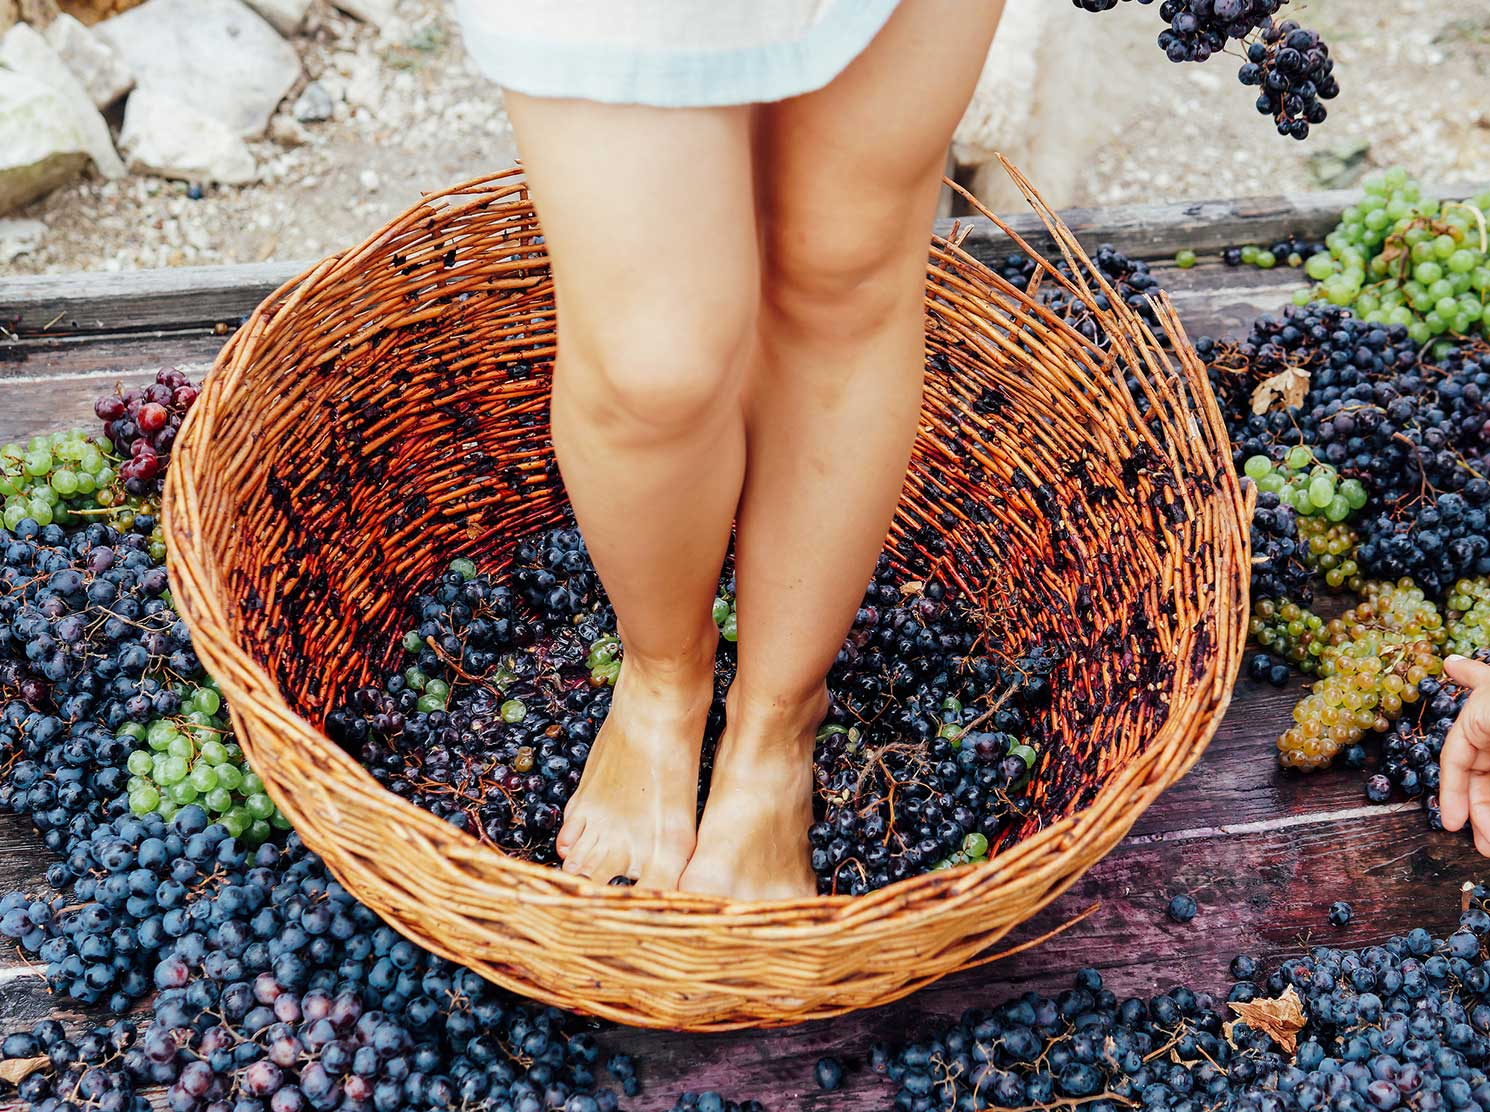 Woman stomping grapes in basket